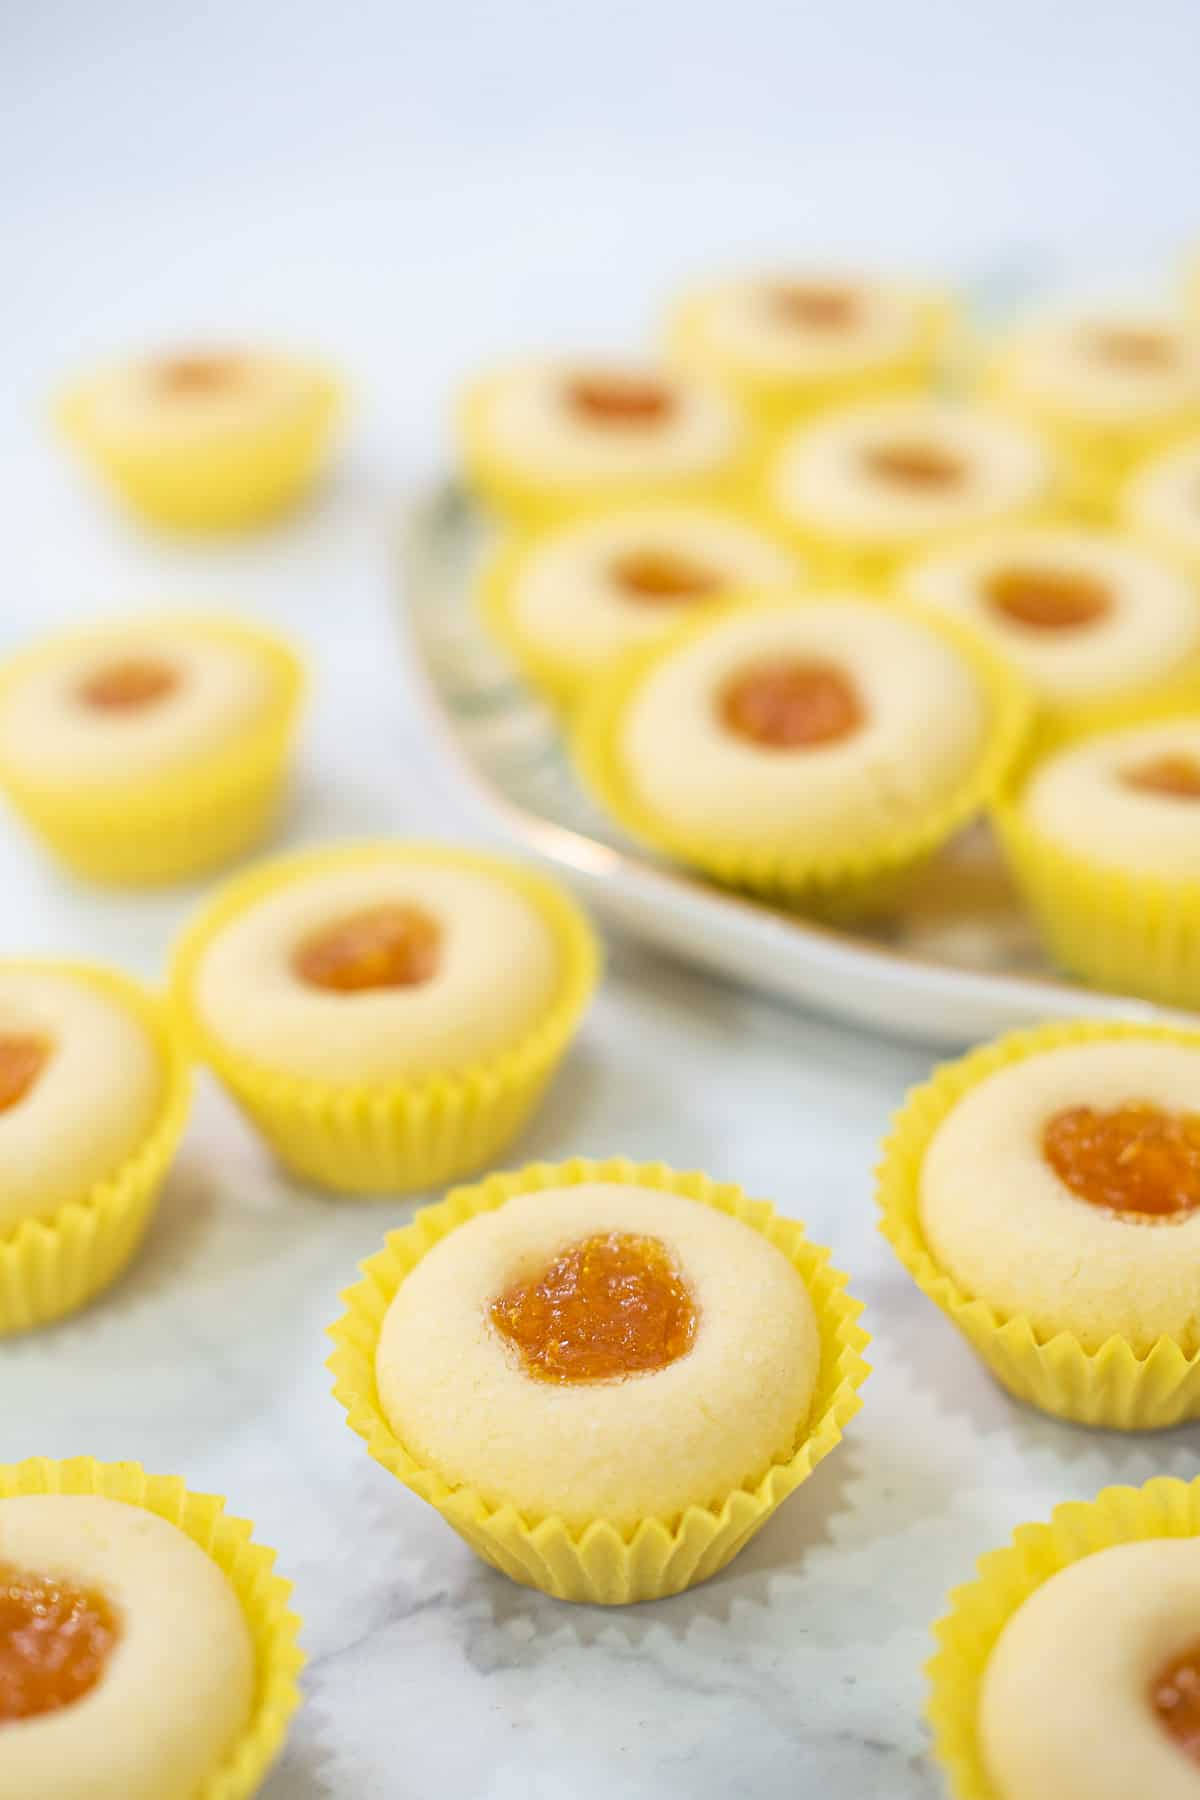 Jam filled cookies in yellow casings, against a marble background